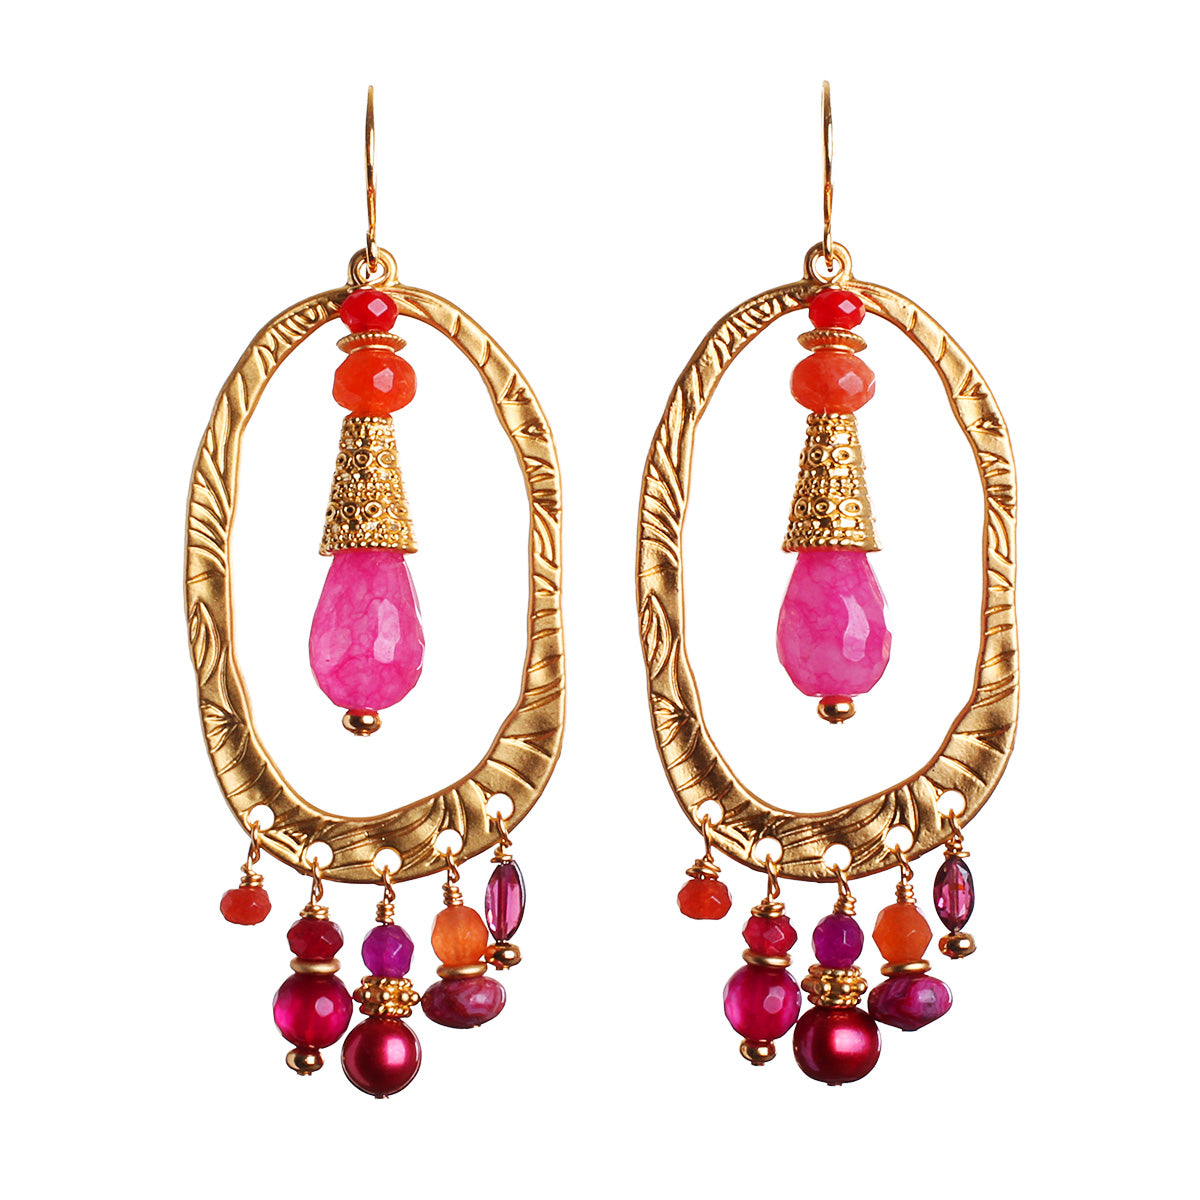 N°595 The Tangerine & Watermelon Midnight Wedding Statement Earrings